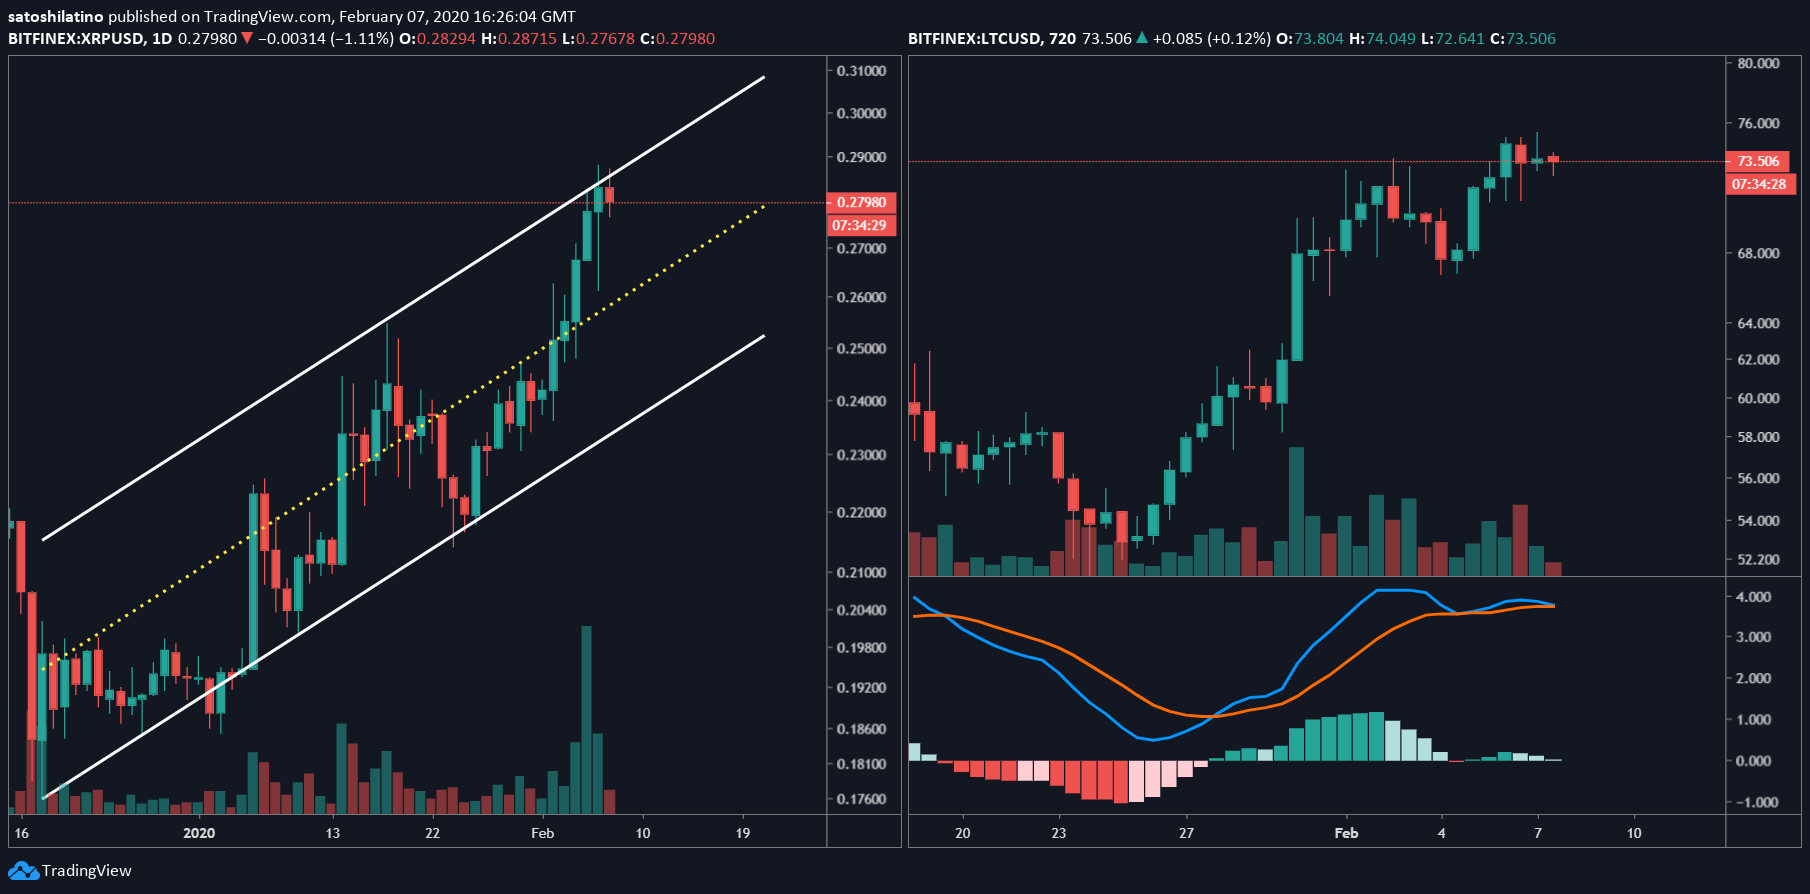 XRP/USD and LTC/USD chart by TradingView